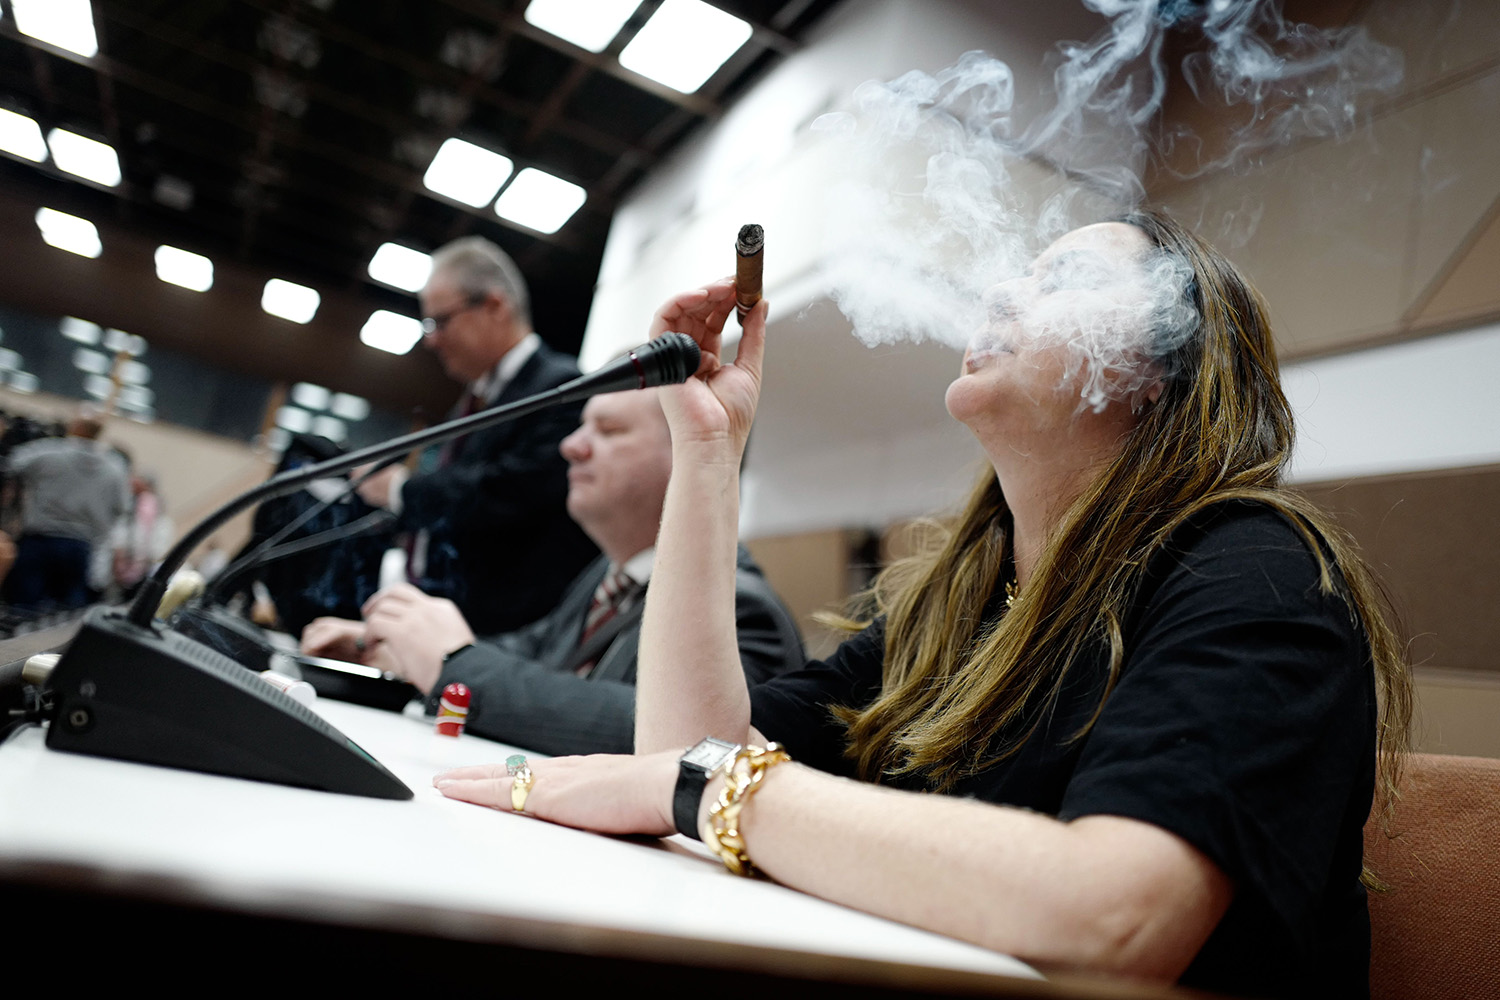 A woman smokes a cigar during the opening of the Cuban Cigar Festival at the Havana Convention Center on Feb. 24. ADALBERTO ROQUE/AFP via Getty Images